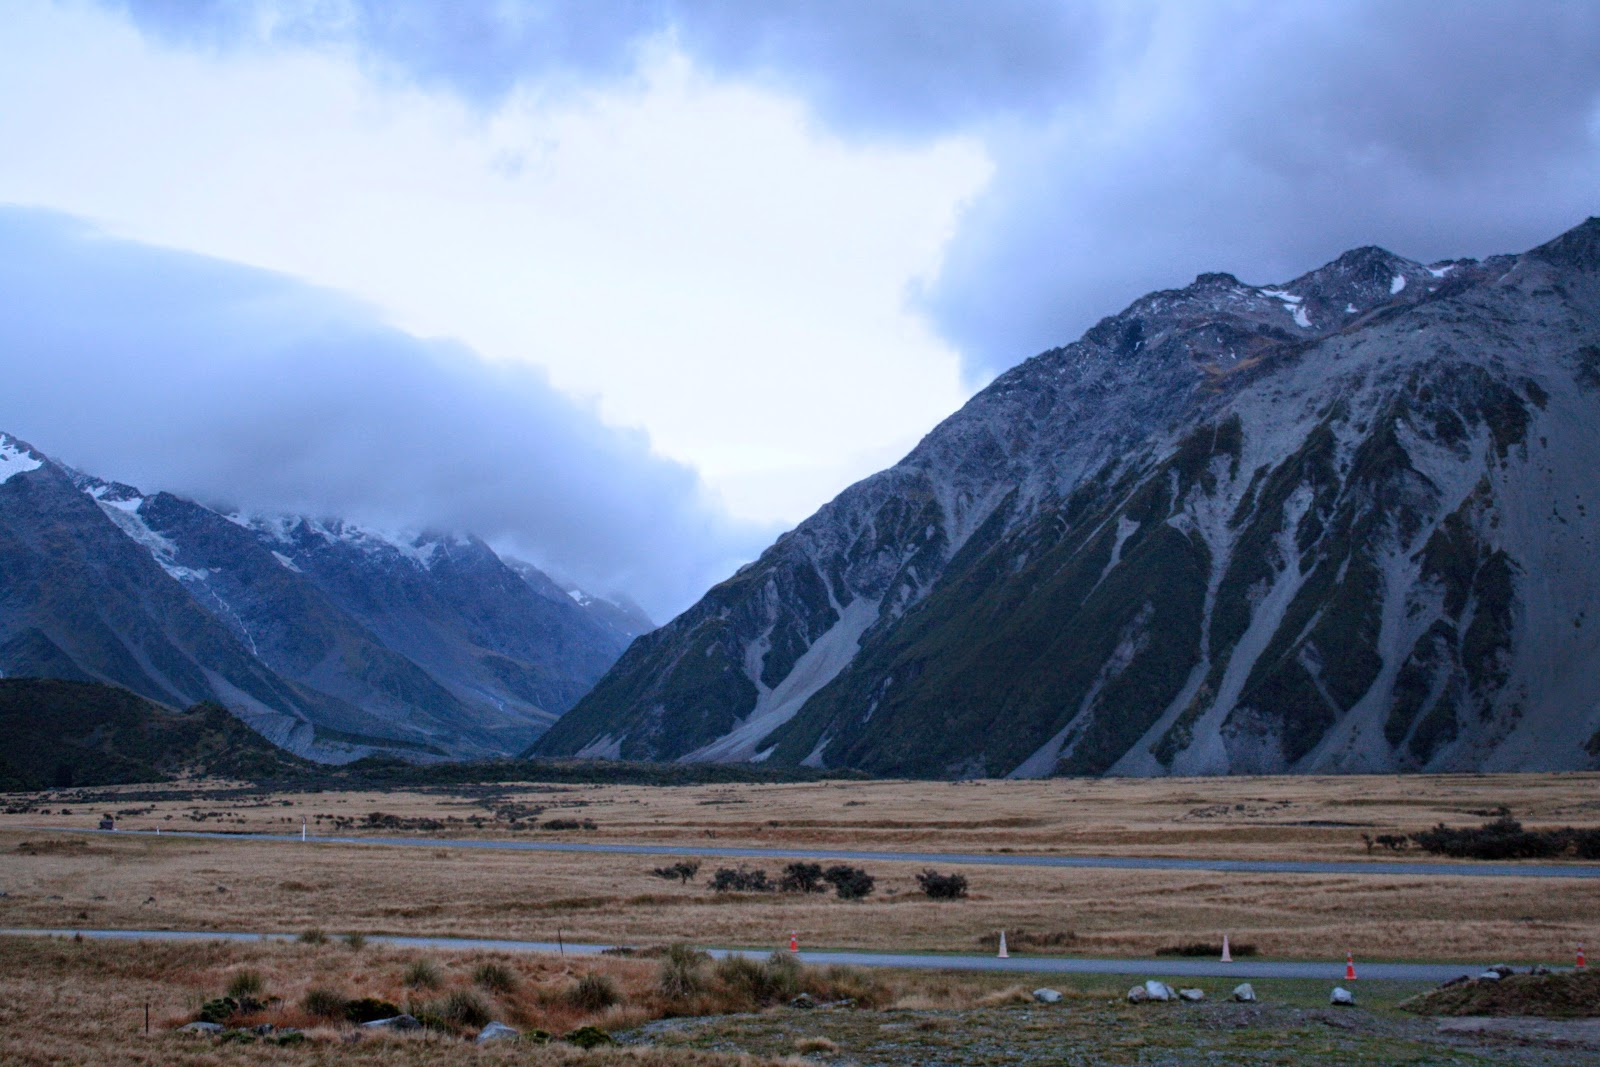 View from the backpackers in Aoraki National Park.